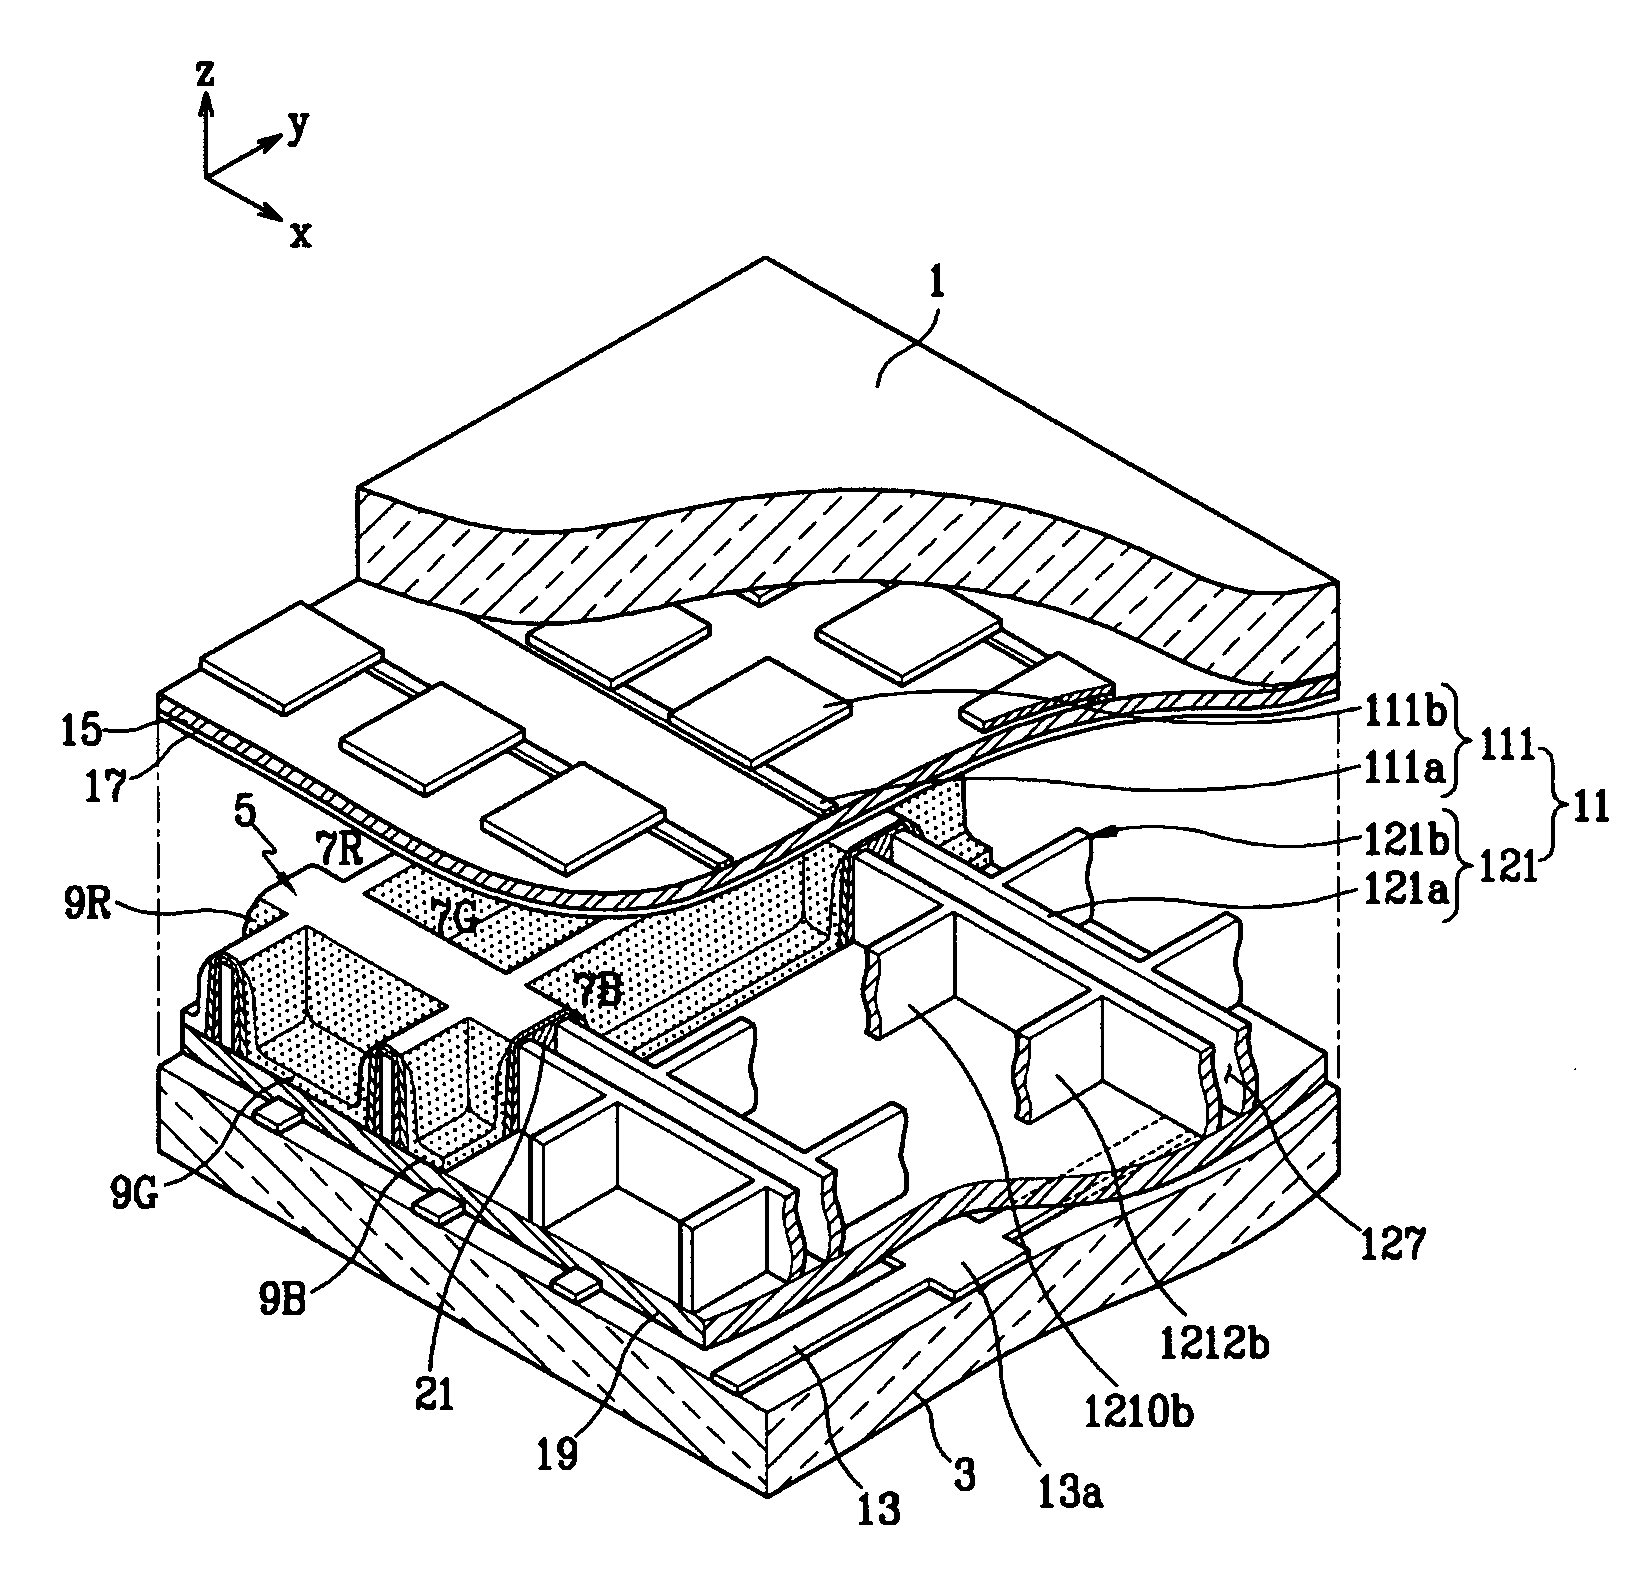 brevet us7557505 plasma display panel provided with display Sponge Electrodes patent drawing